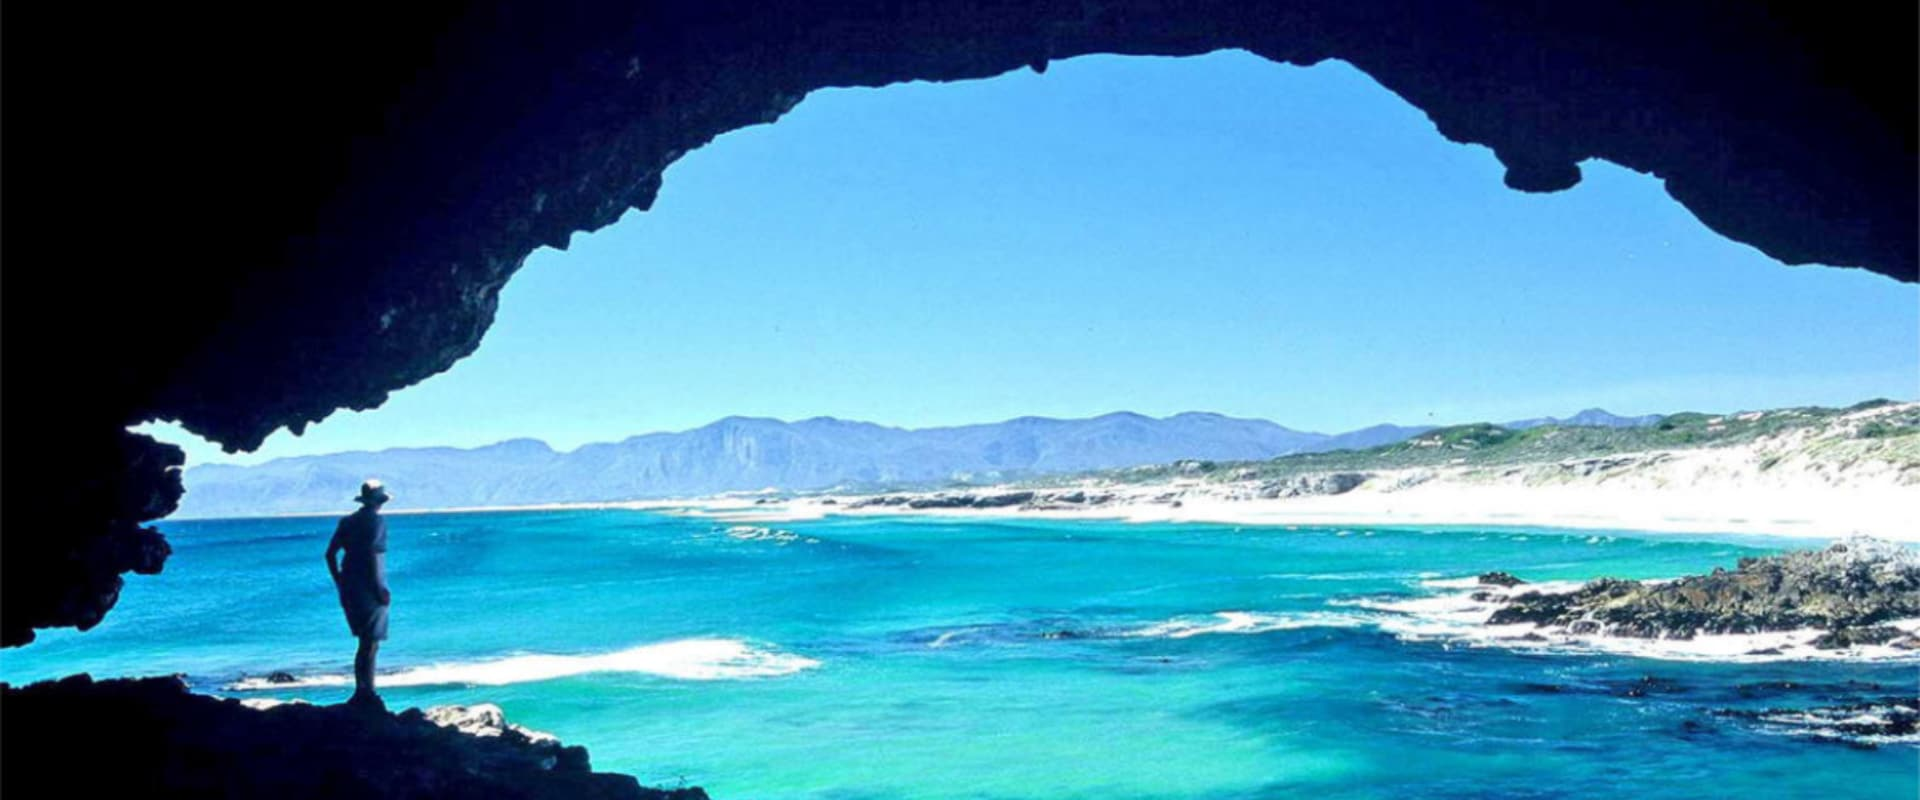 Delight in a beautiful Cave & Beach excursion